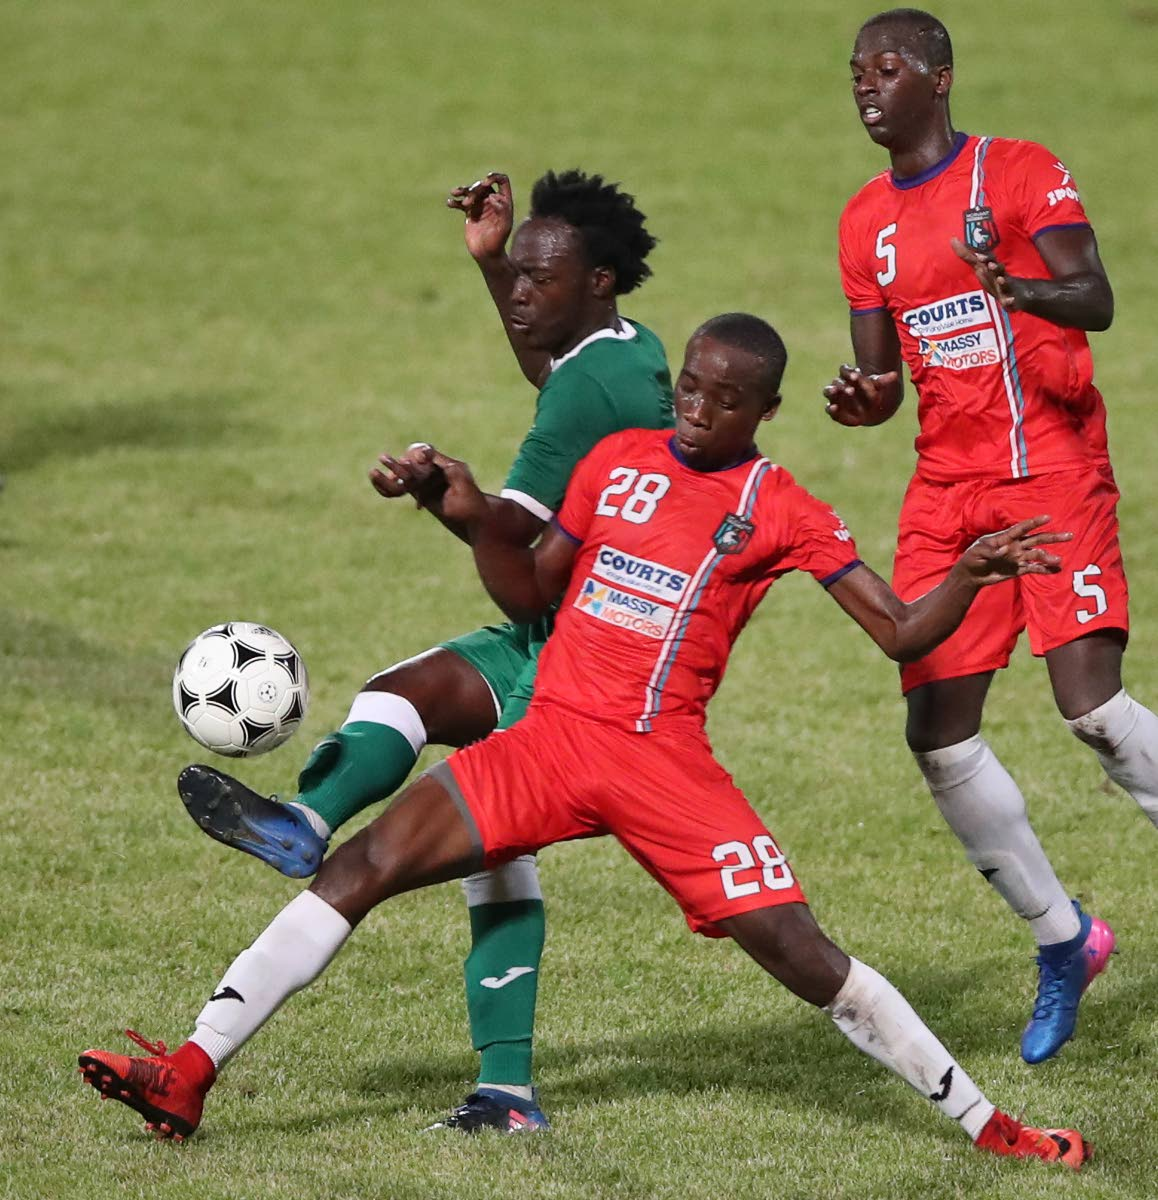 Morvant Caledonia United's Jomokie Cassimy, centre, and Joshua Sylvester, right, mark a W Connection opponent in a First Citizens Cup match at the Ato Boldon Stadium, Couva.